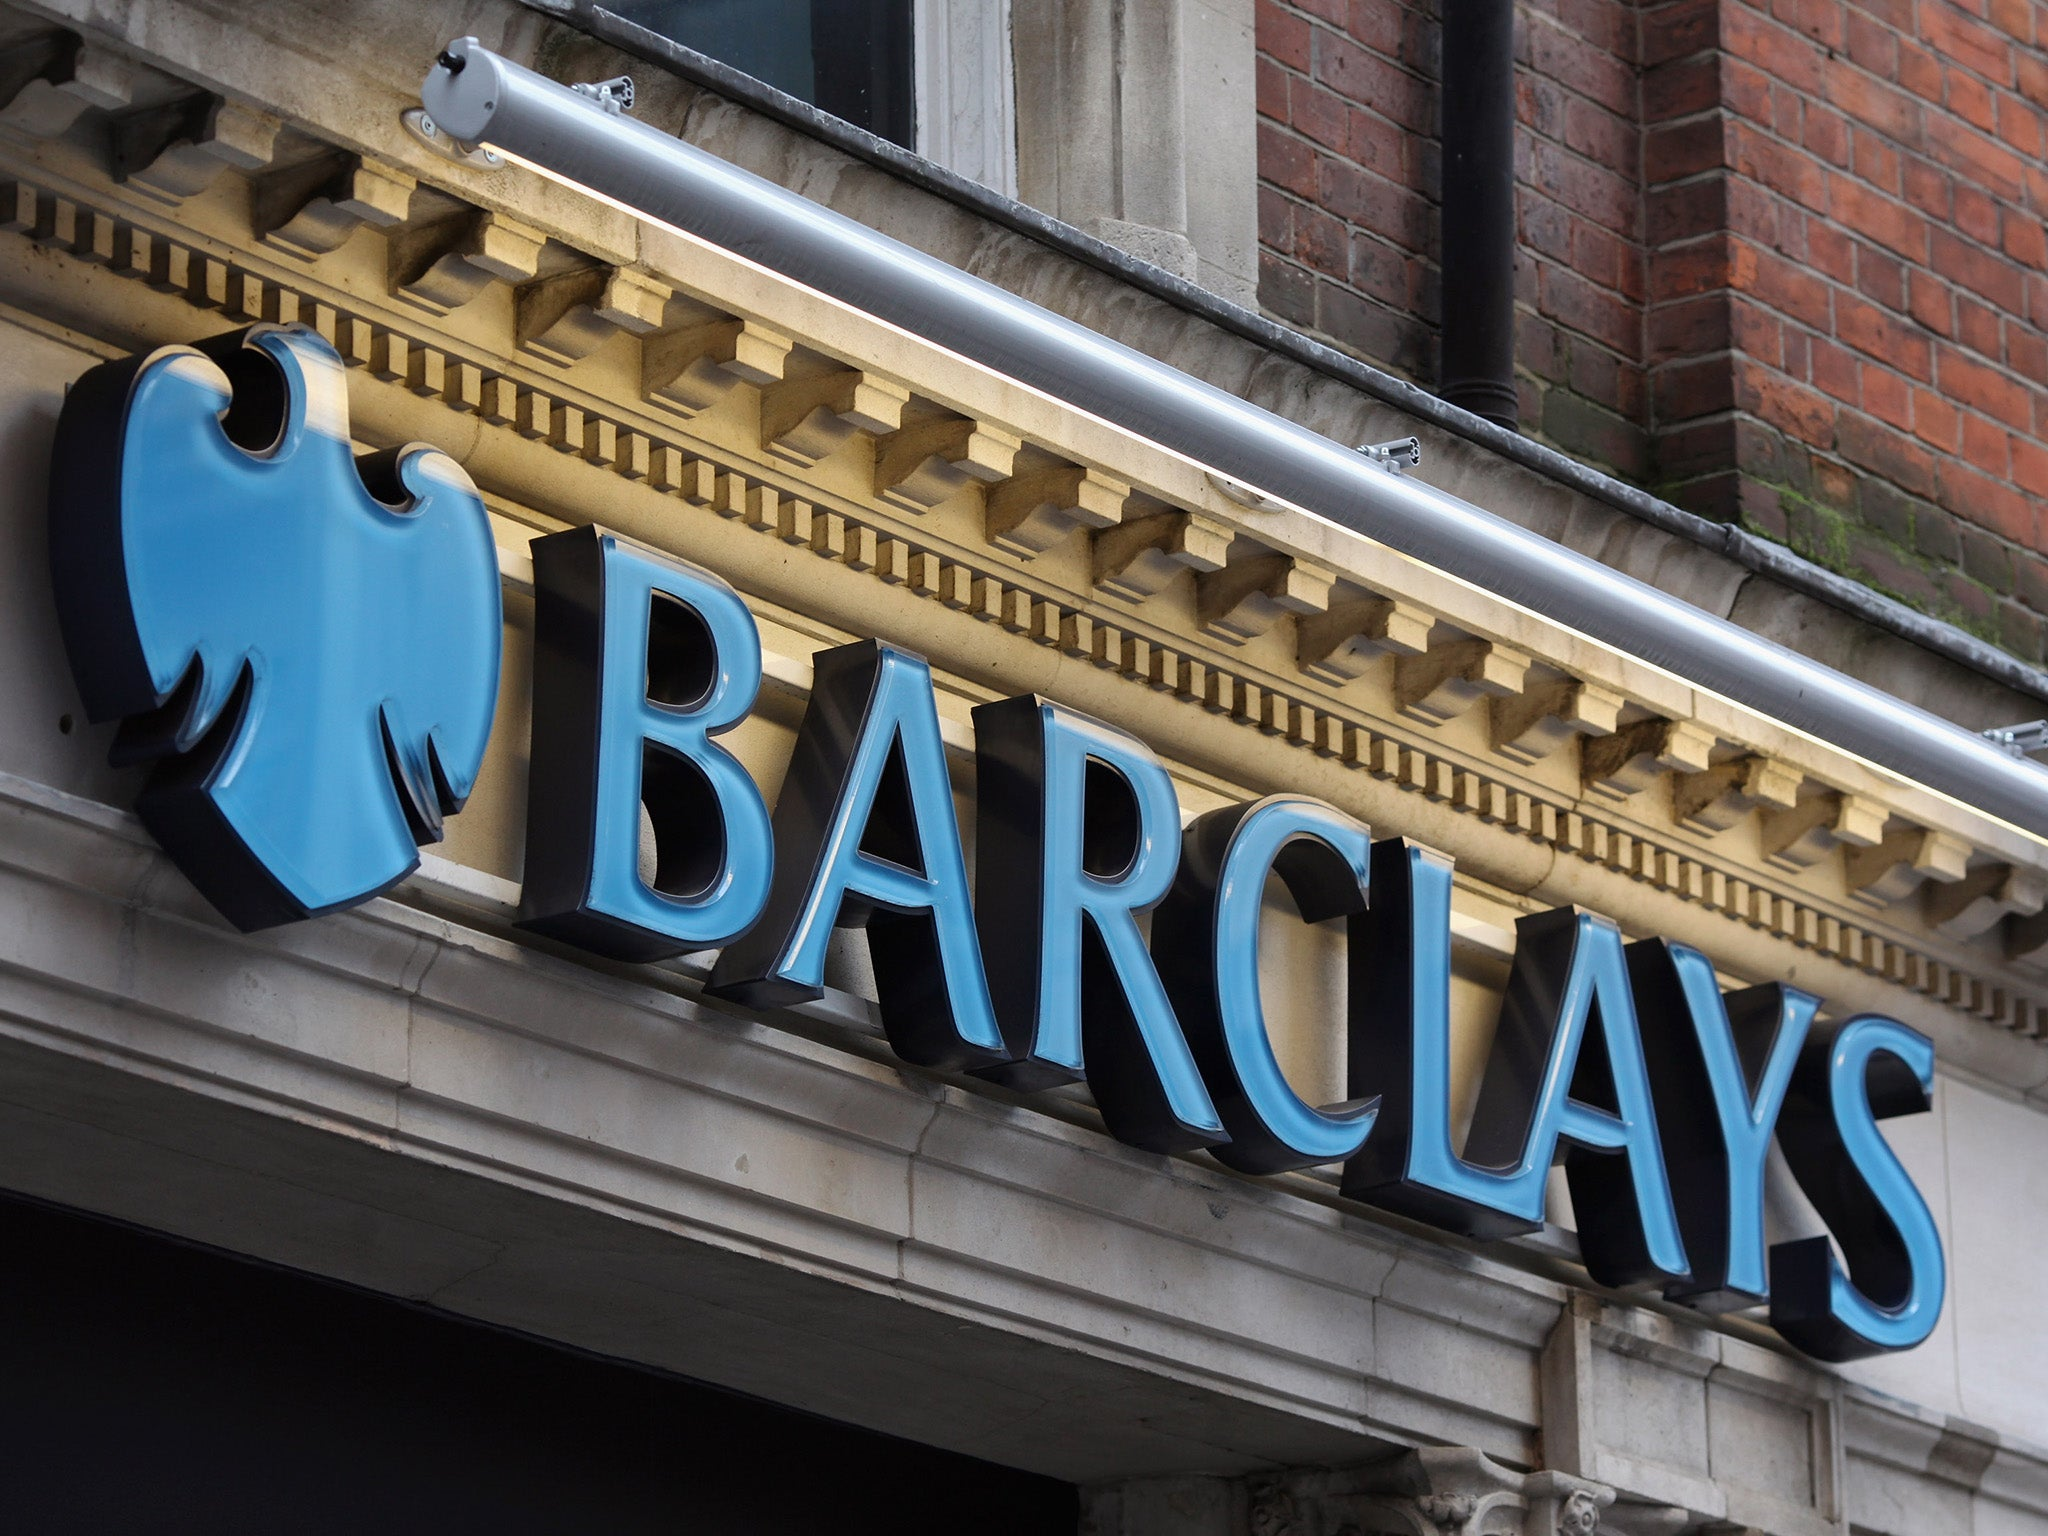 Could Barclays Banking License Be Suspended Over Fraud Charges The Independent The Independent